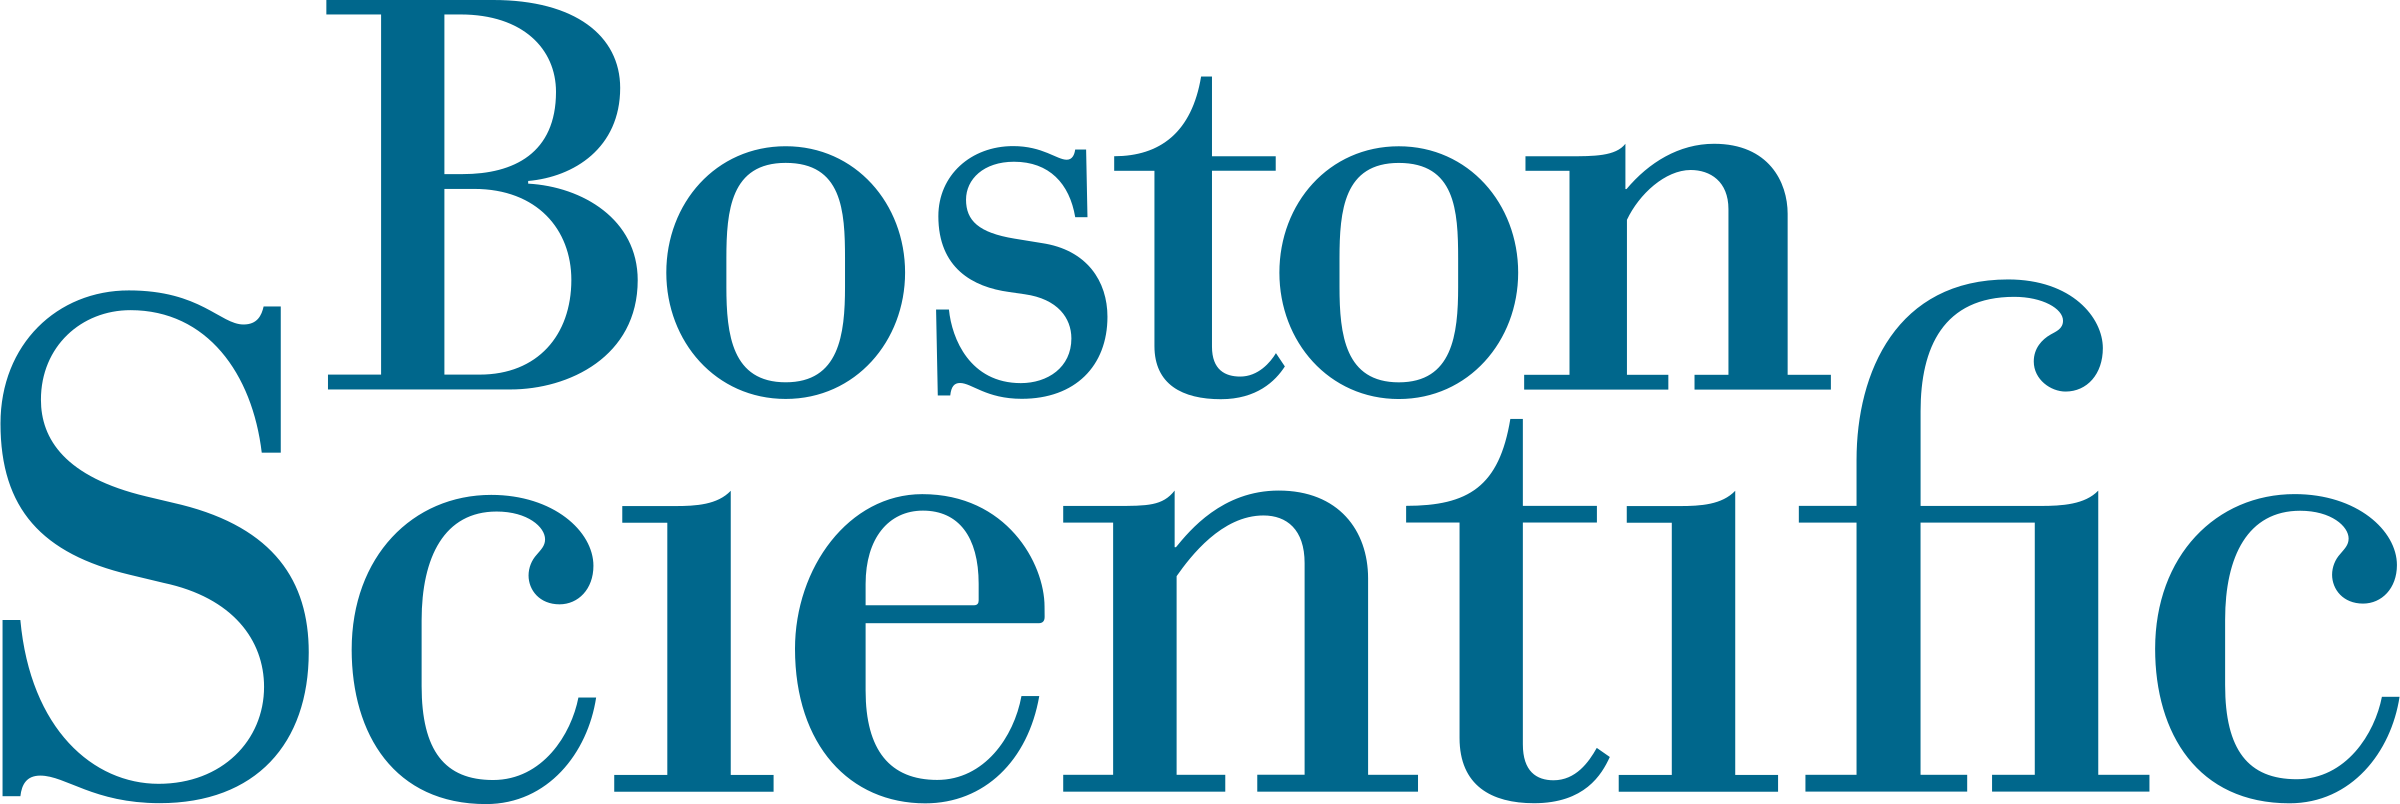 https://womensvascular.org/wp-content/uploads/sites/38/2019/12/boston-scientific-1-logo-png-transparent.png